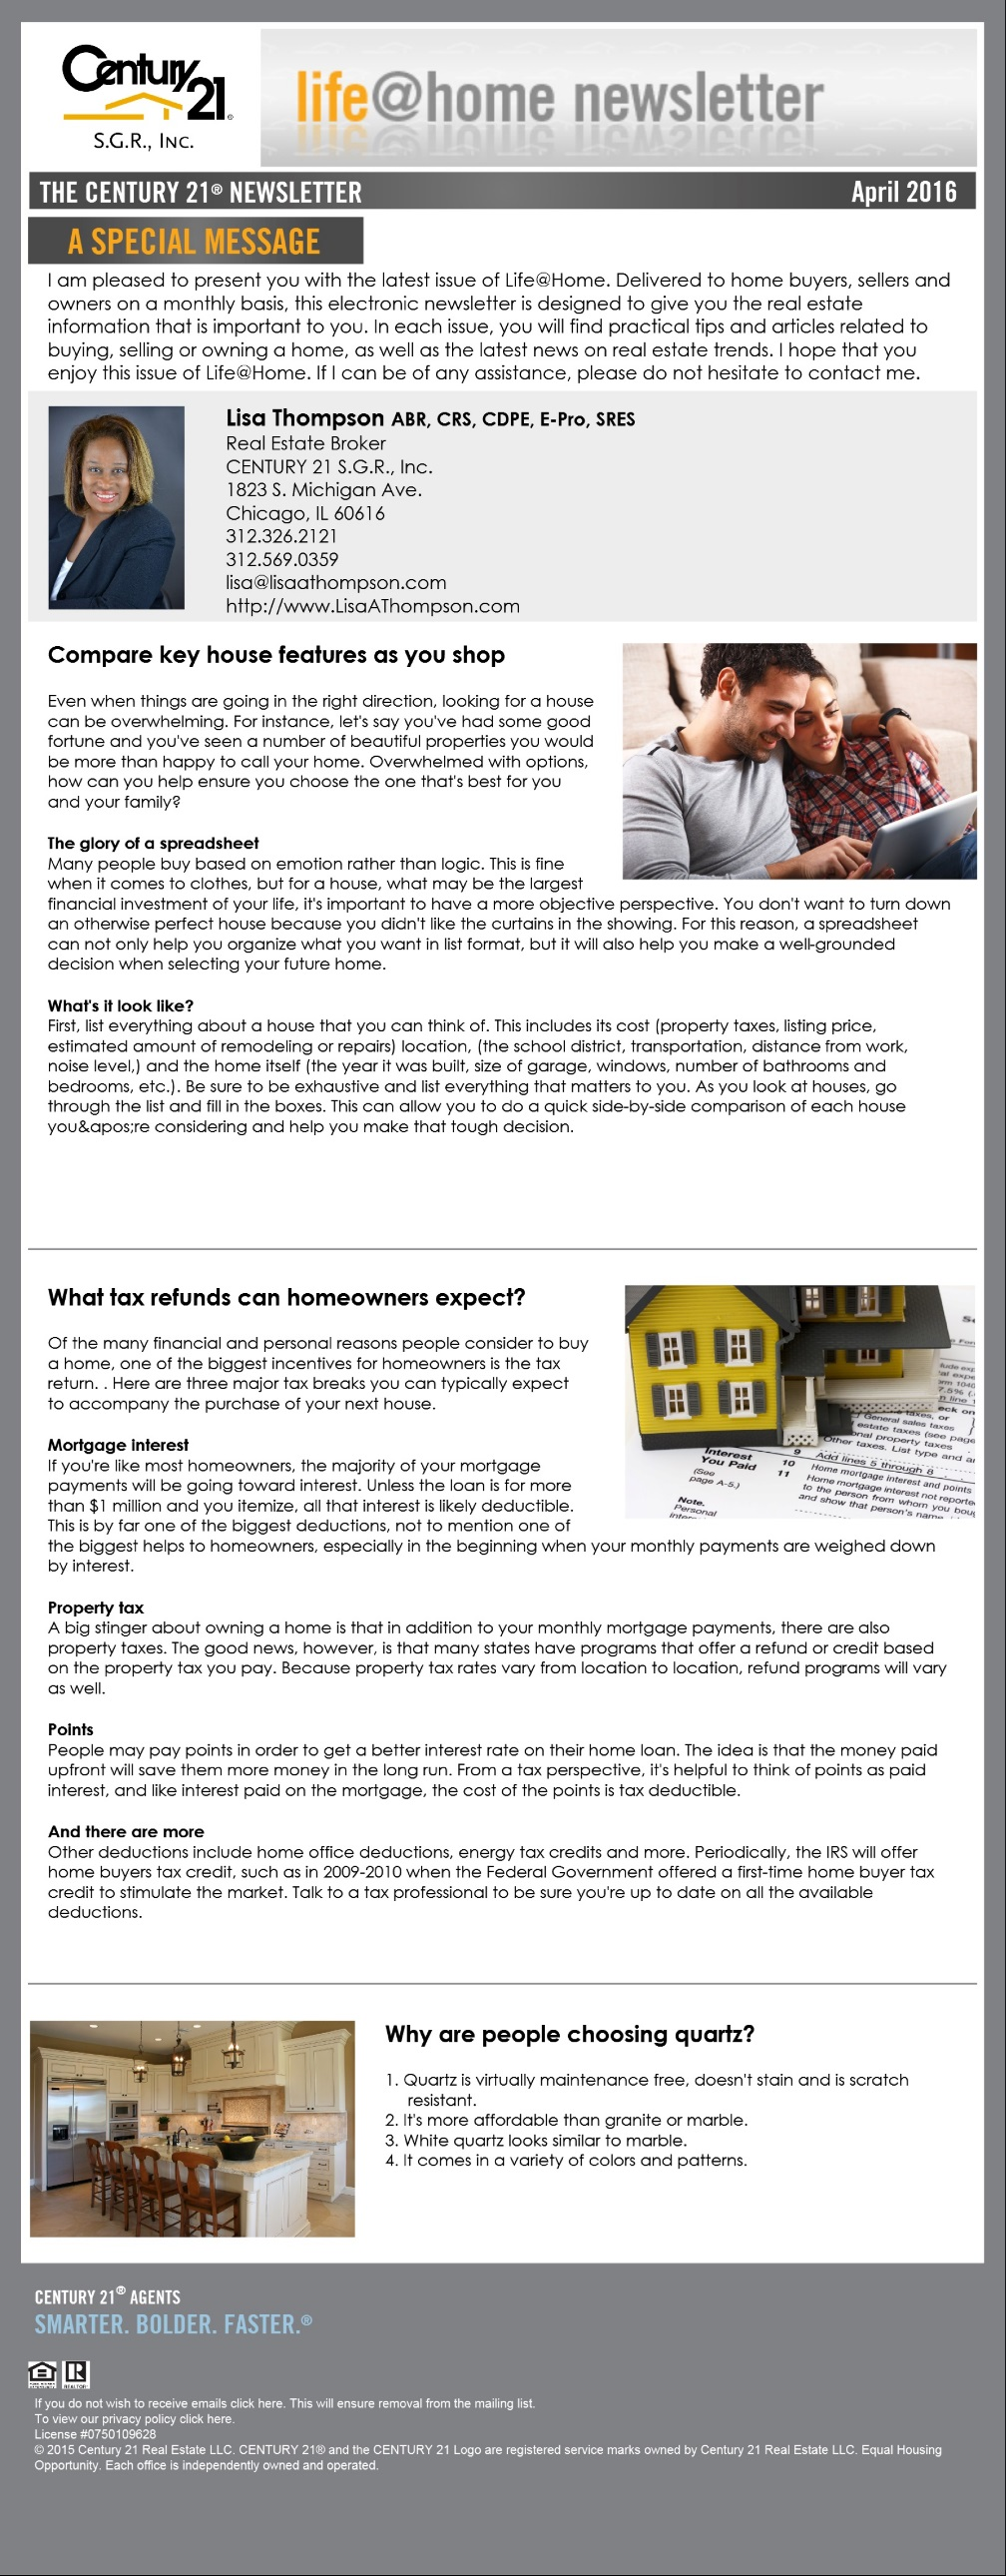 Please enjoy the April edition of Century 21's Life @ Home newsletter.